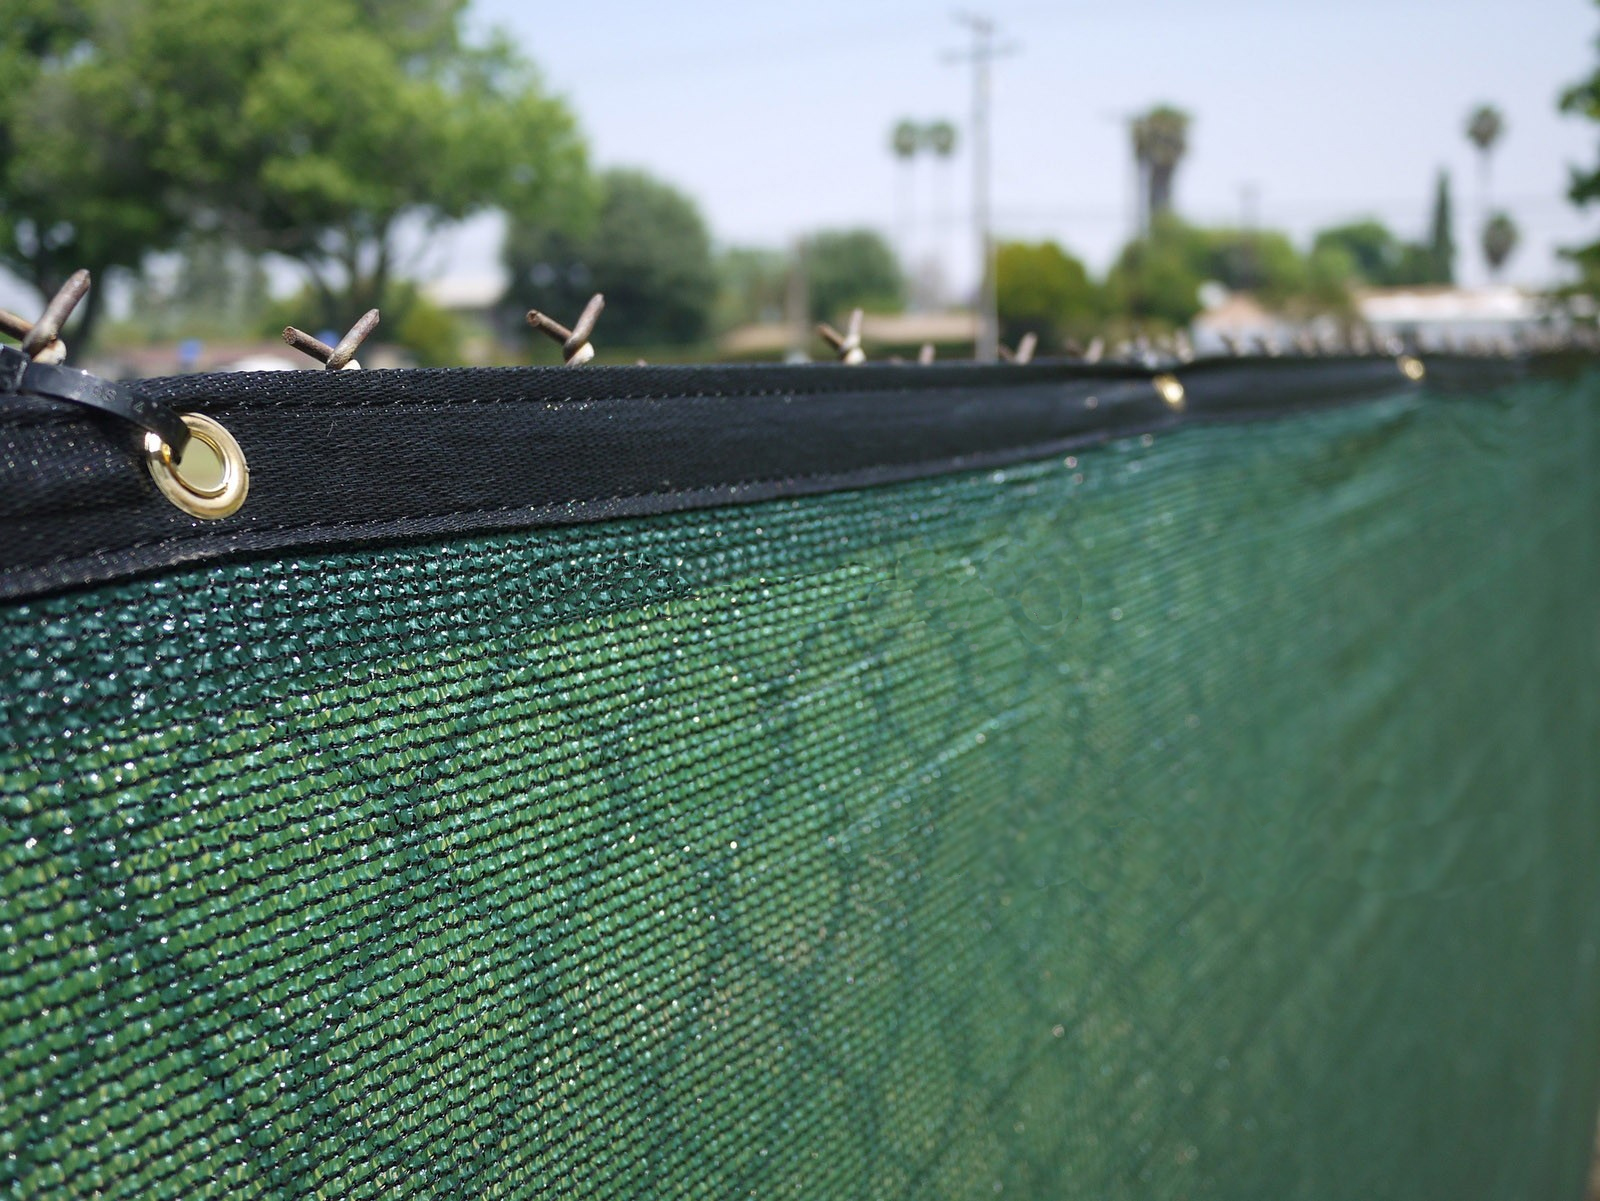 Privacy screen for chain link fence ebay - 5x Lot 6 X 50 Commercial Grade Fence Wind Privacy Screen Covers 250